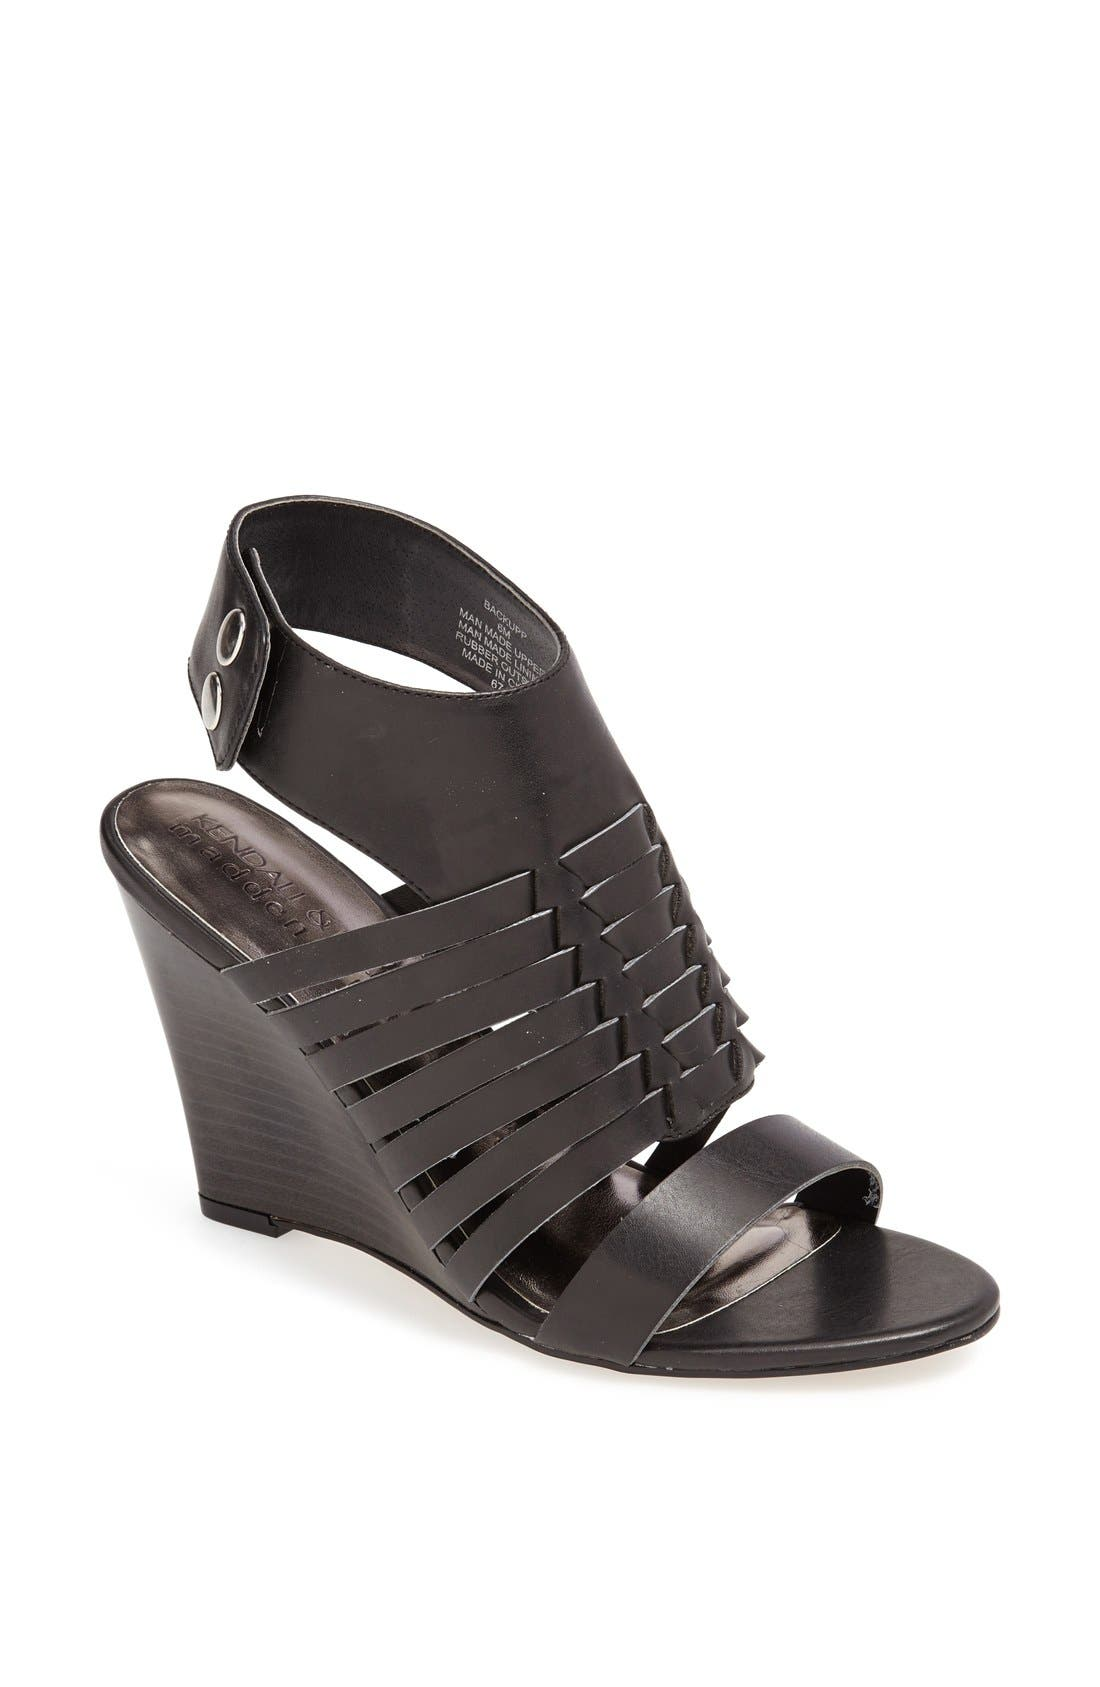 Alternate Image 1 Selected - KENDALL + KYLIE Madden Girl 'Backupp' Ankle Cuff Sandal